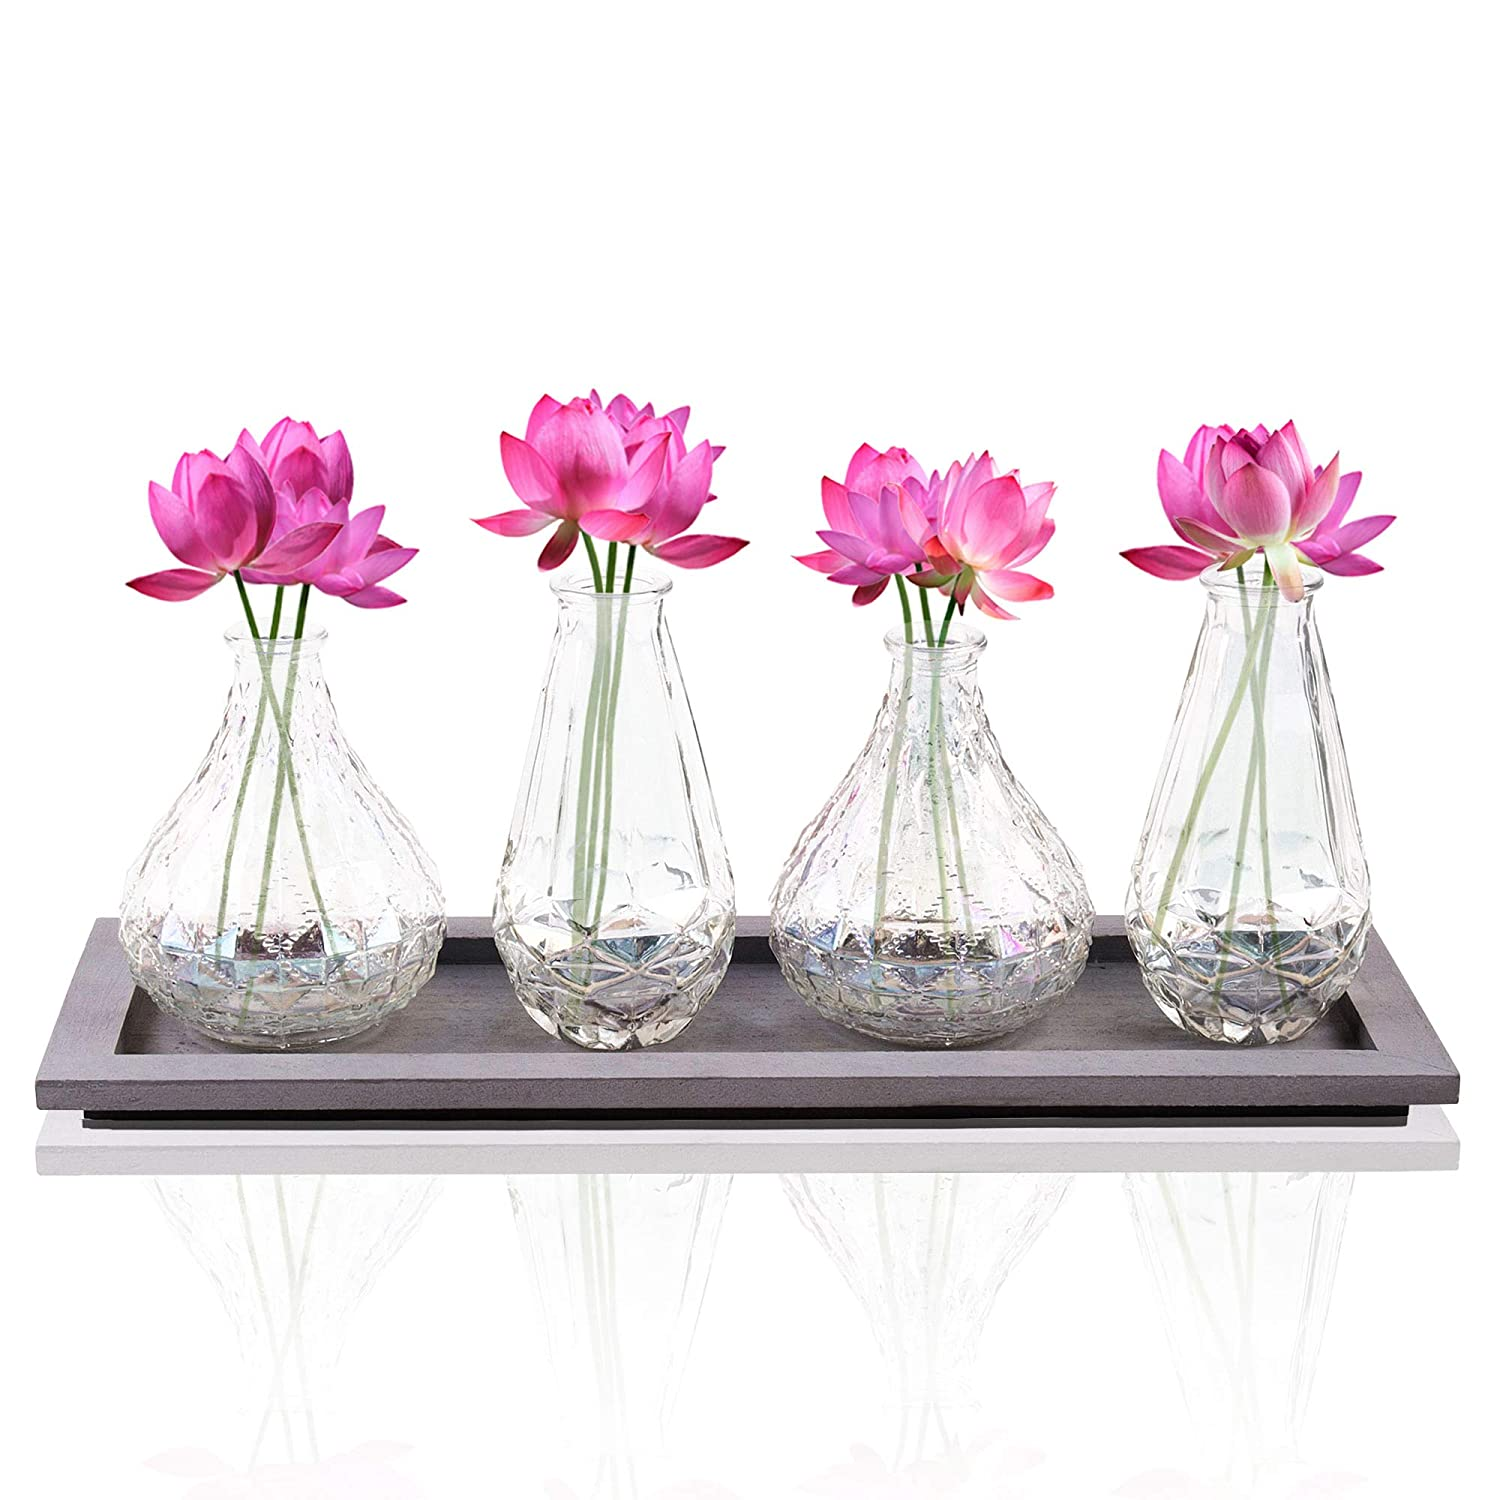 225 & Bud Flower Vases in Wooden Tray Set - 4-Piece Assorted Iridescent Finish Glass Vases in Caddy Home Decor Set for Windowsill Accessory Decorative ...